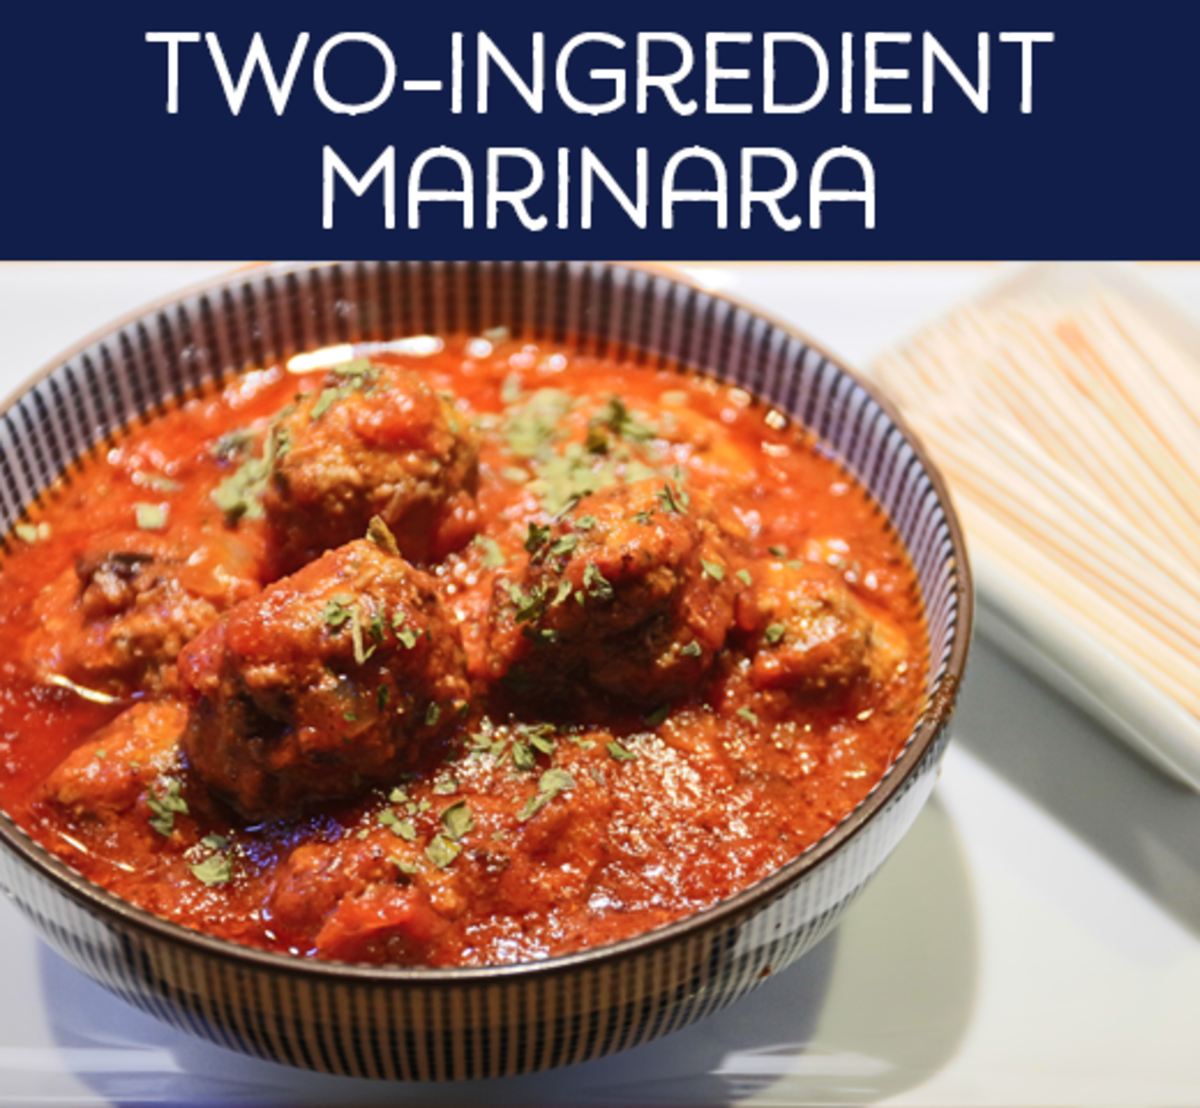 Two-Ingredient Marinara with meatballs.